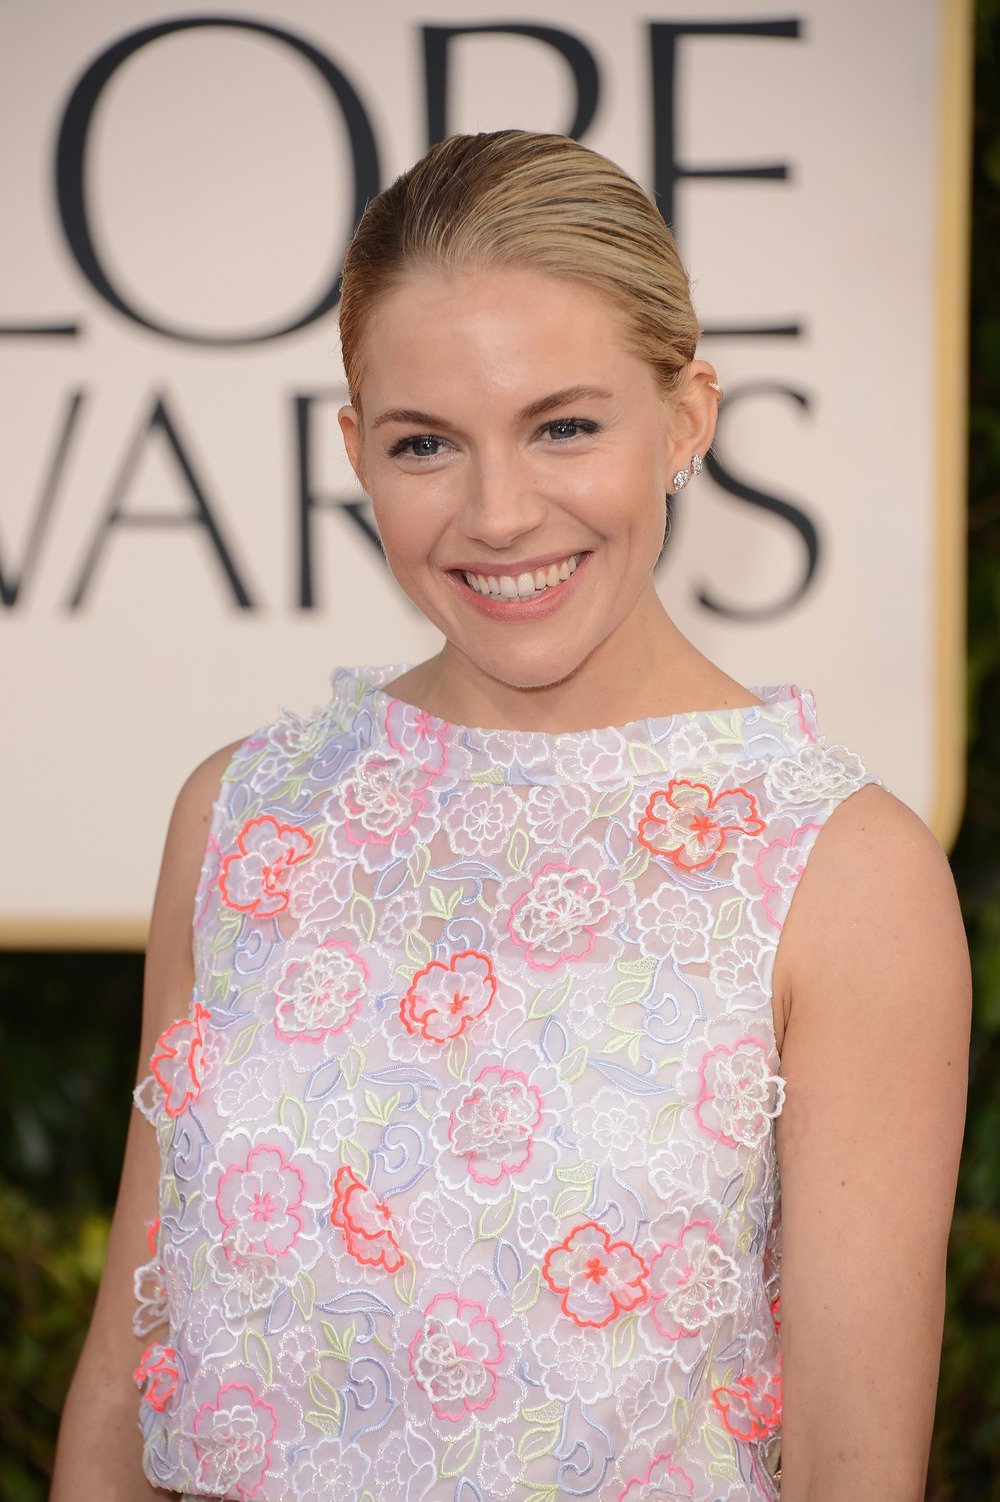 """Sienna Miller Dishes On Her Early Days in Hollywood: """"I Burnt A Lot of Bridges"""""""